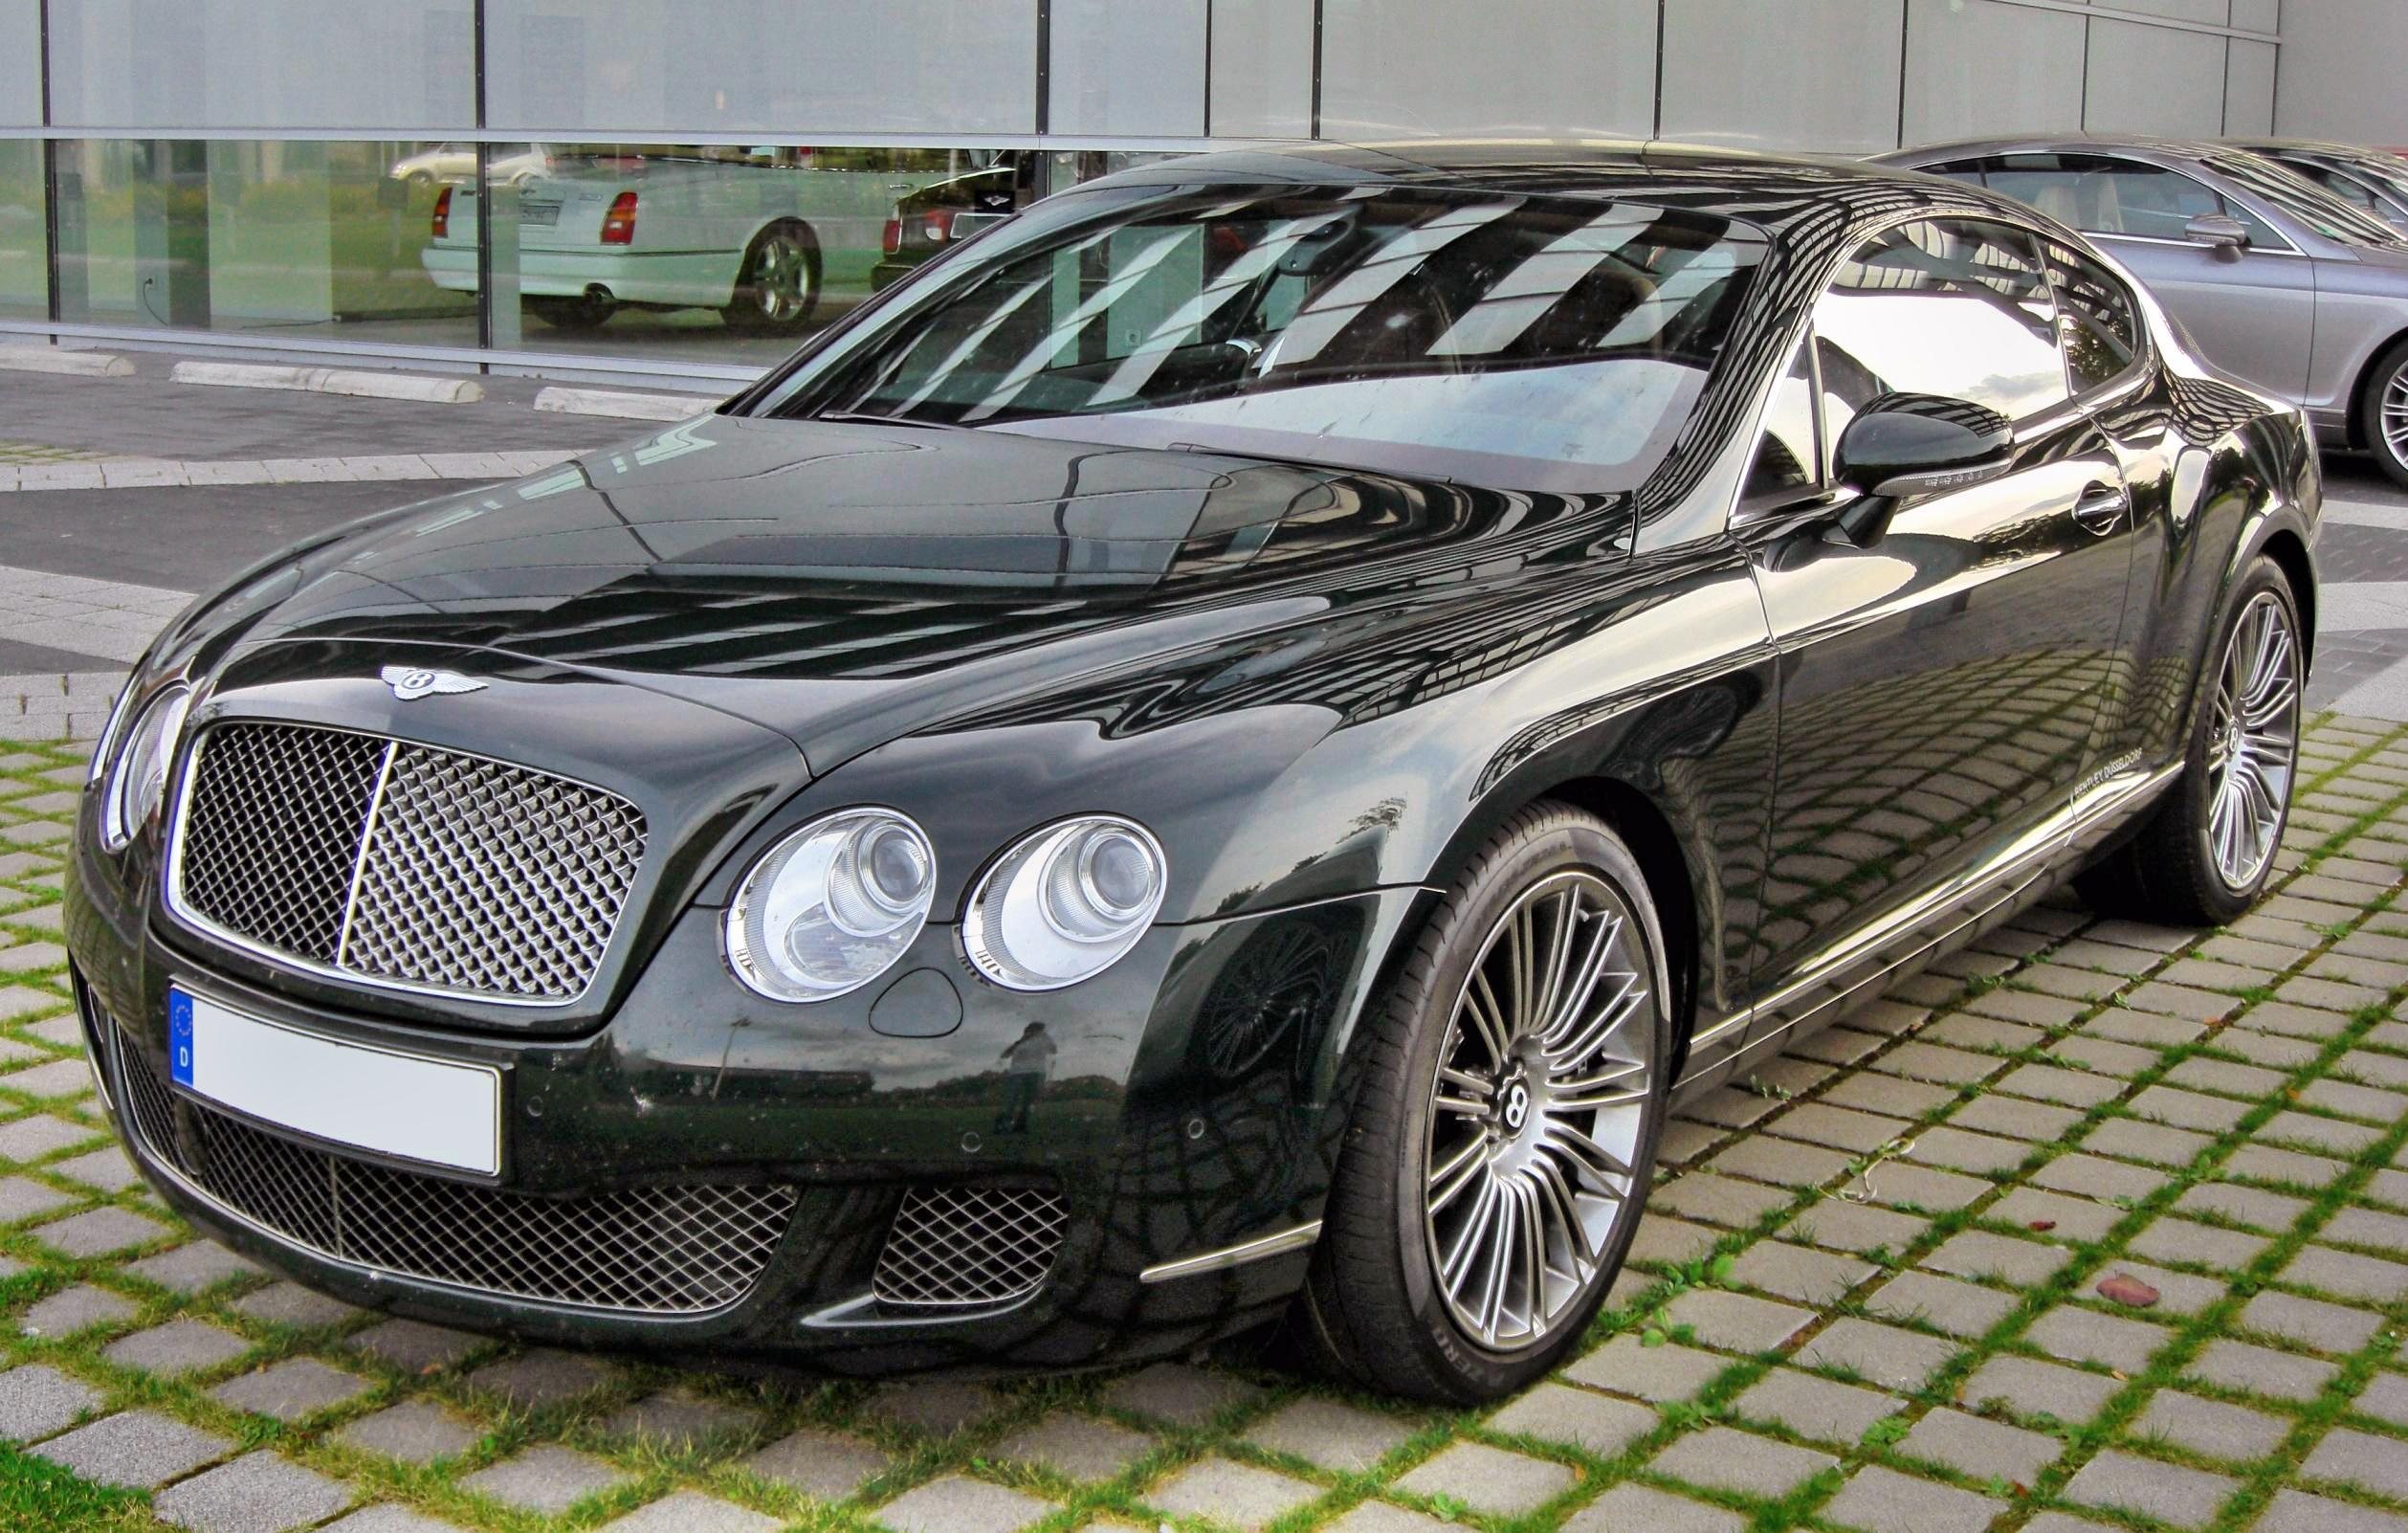 2009 Bentley Continental Gt Speed #1